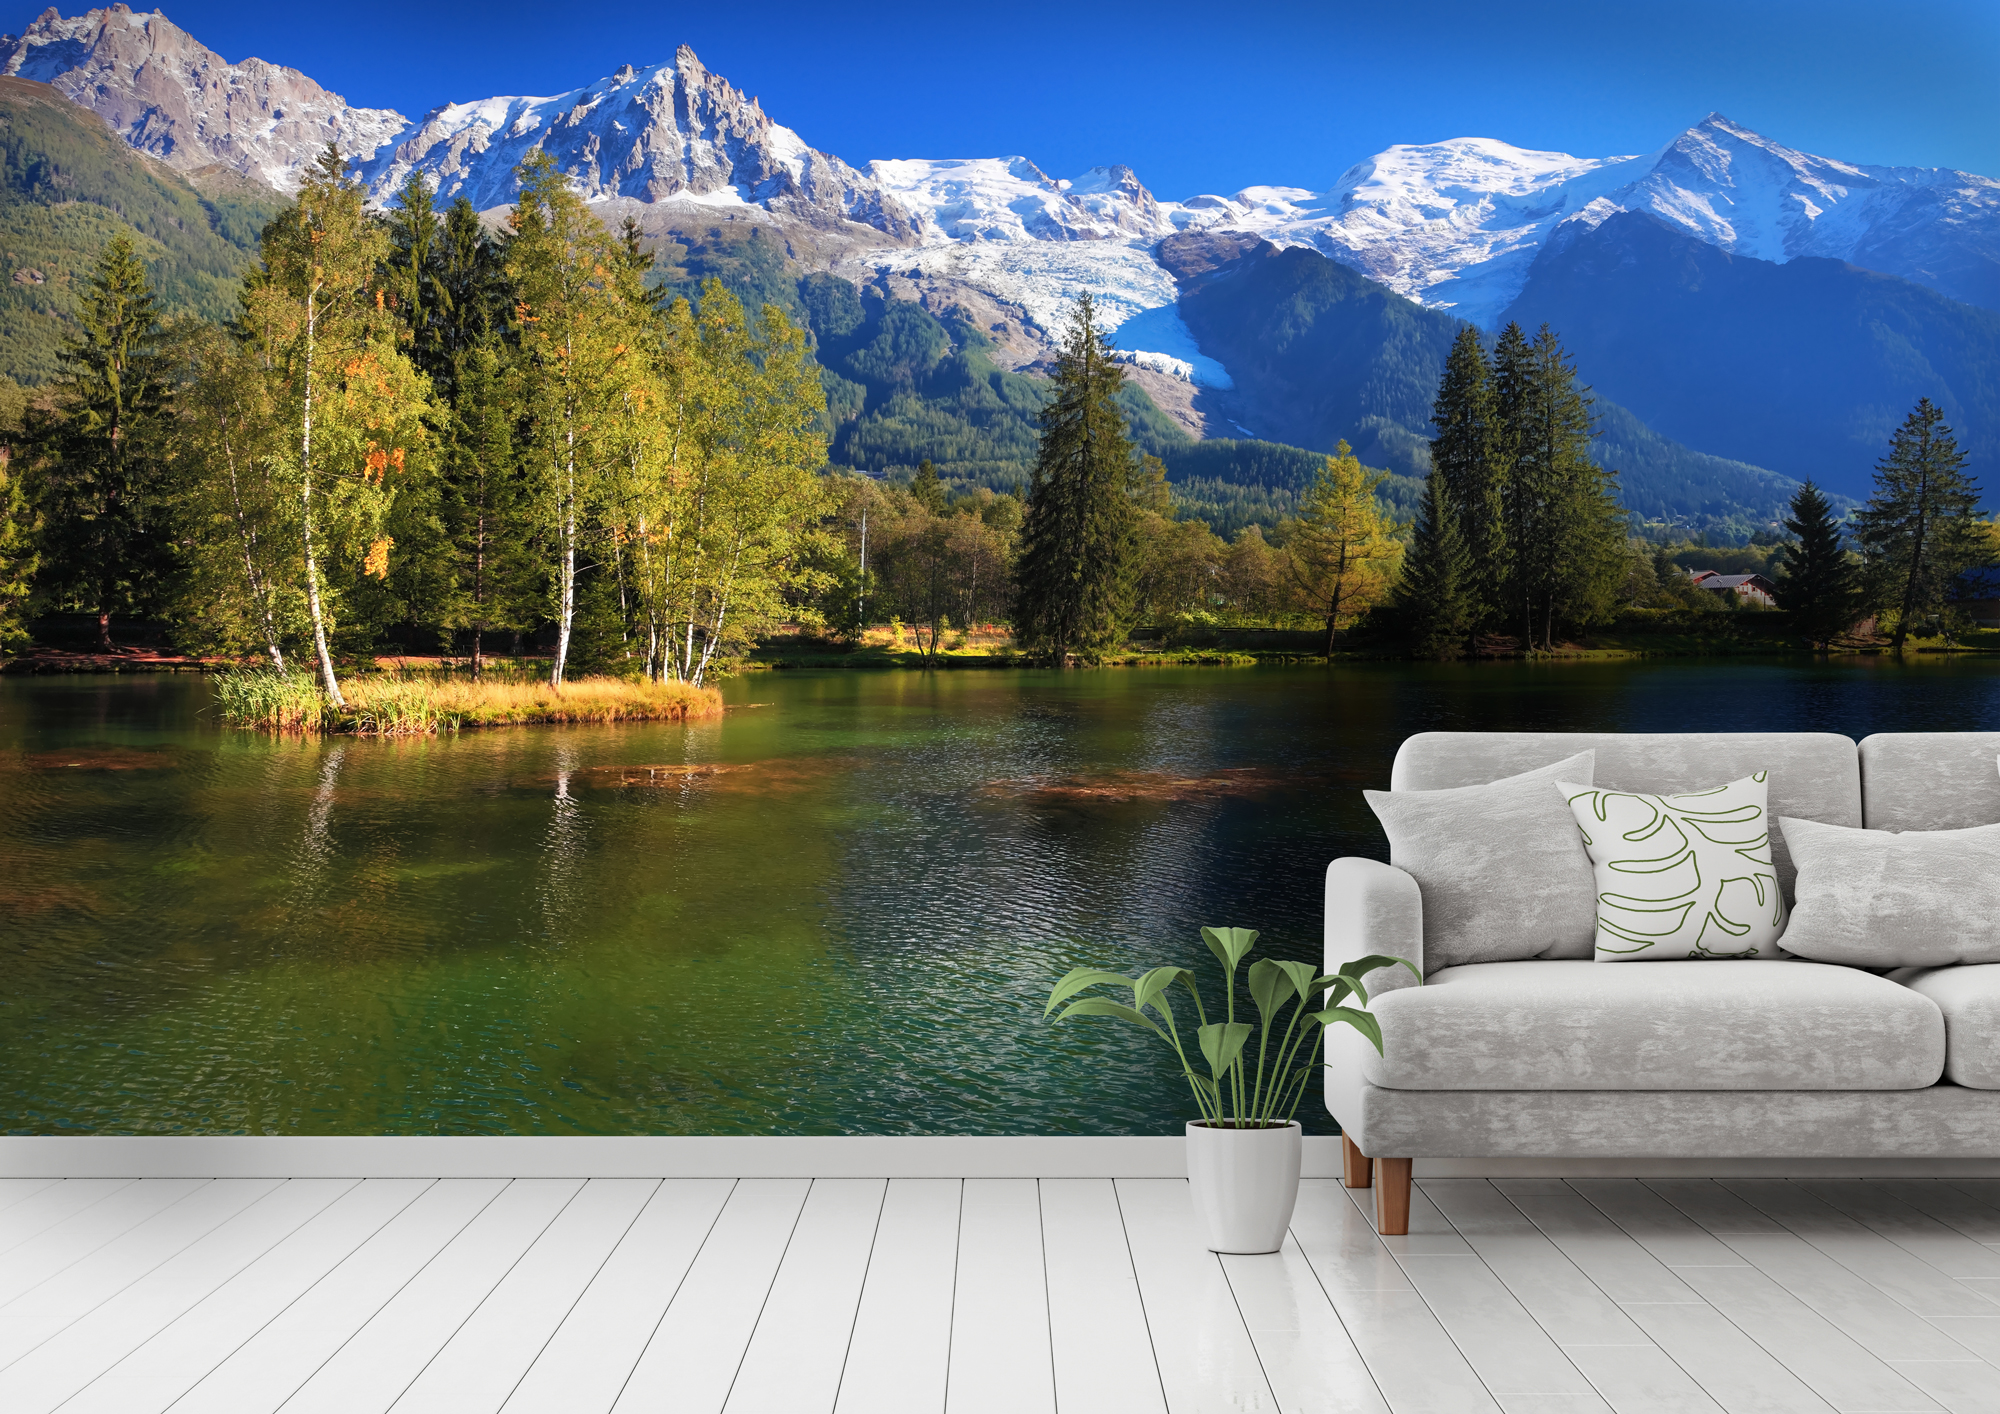 snow-capped-mountains-landscape-wallpaper